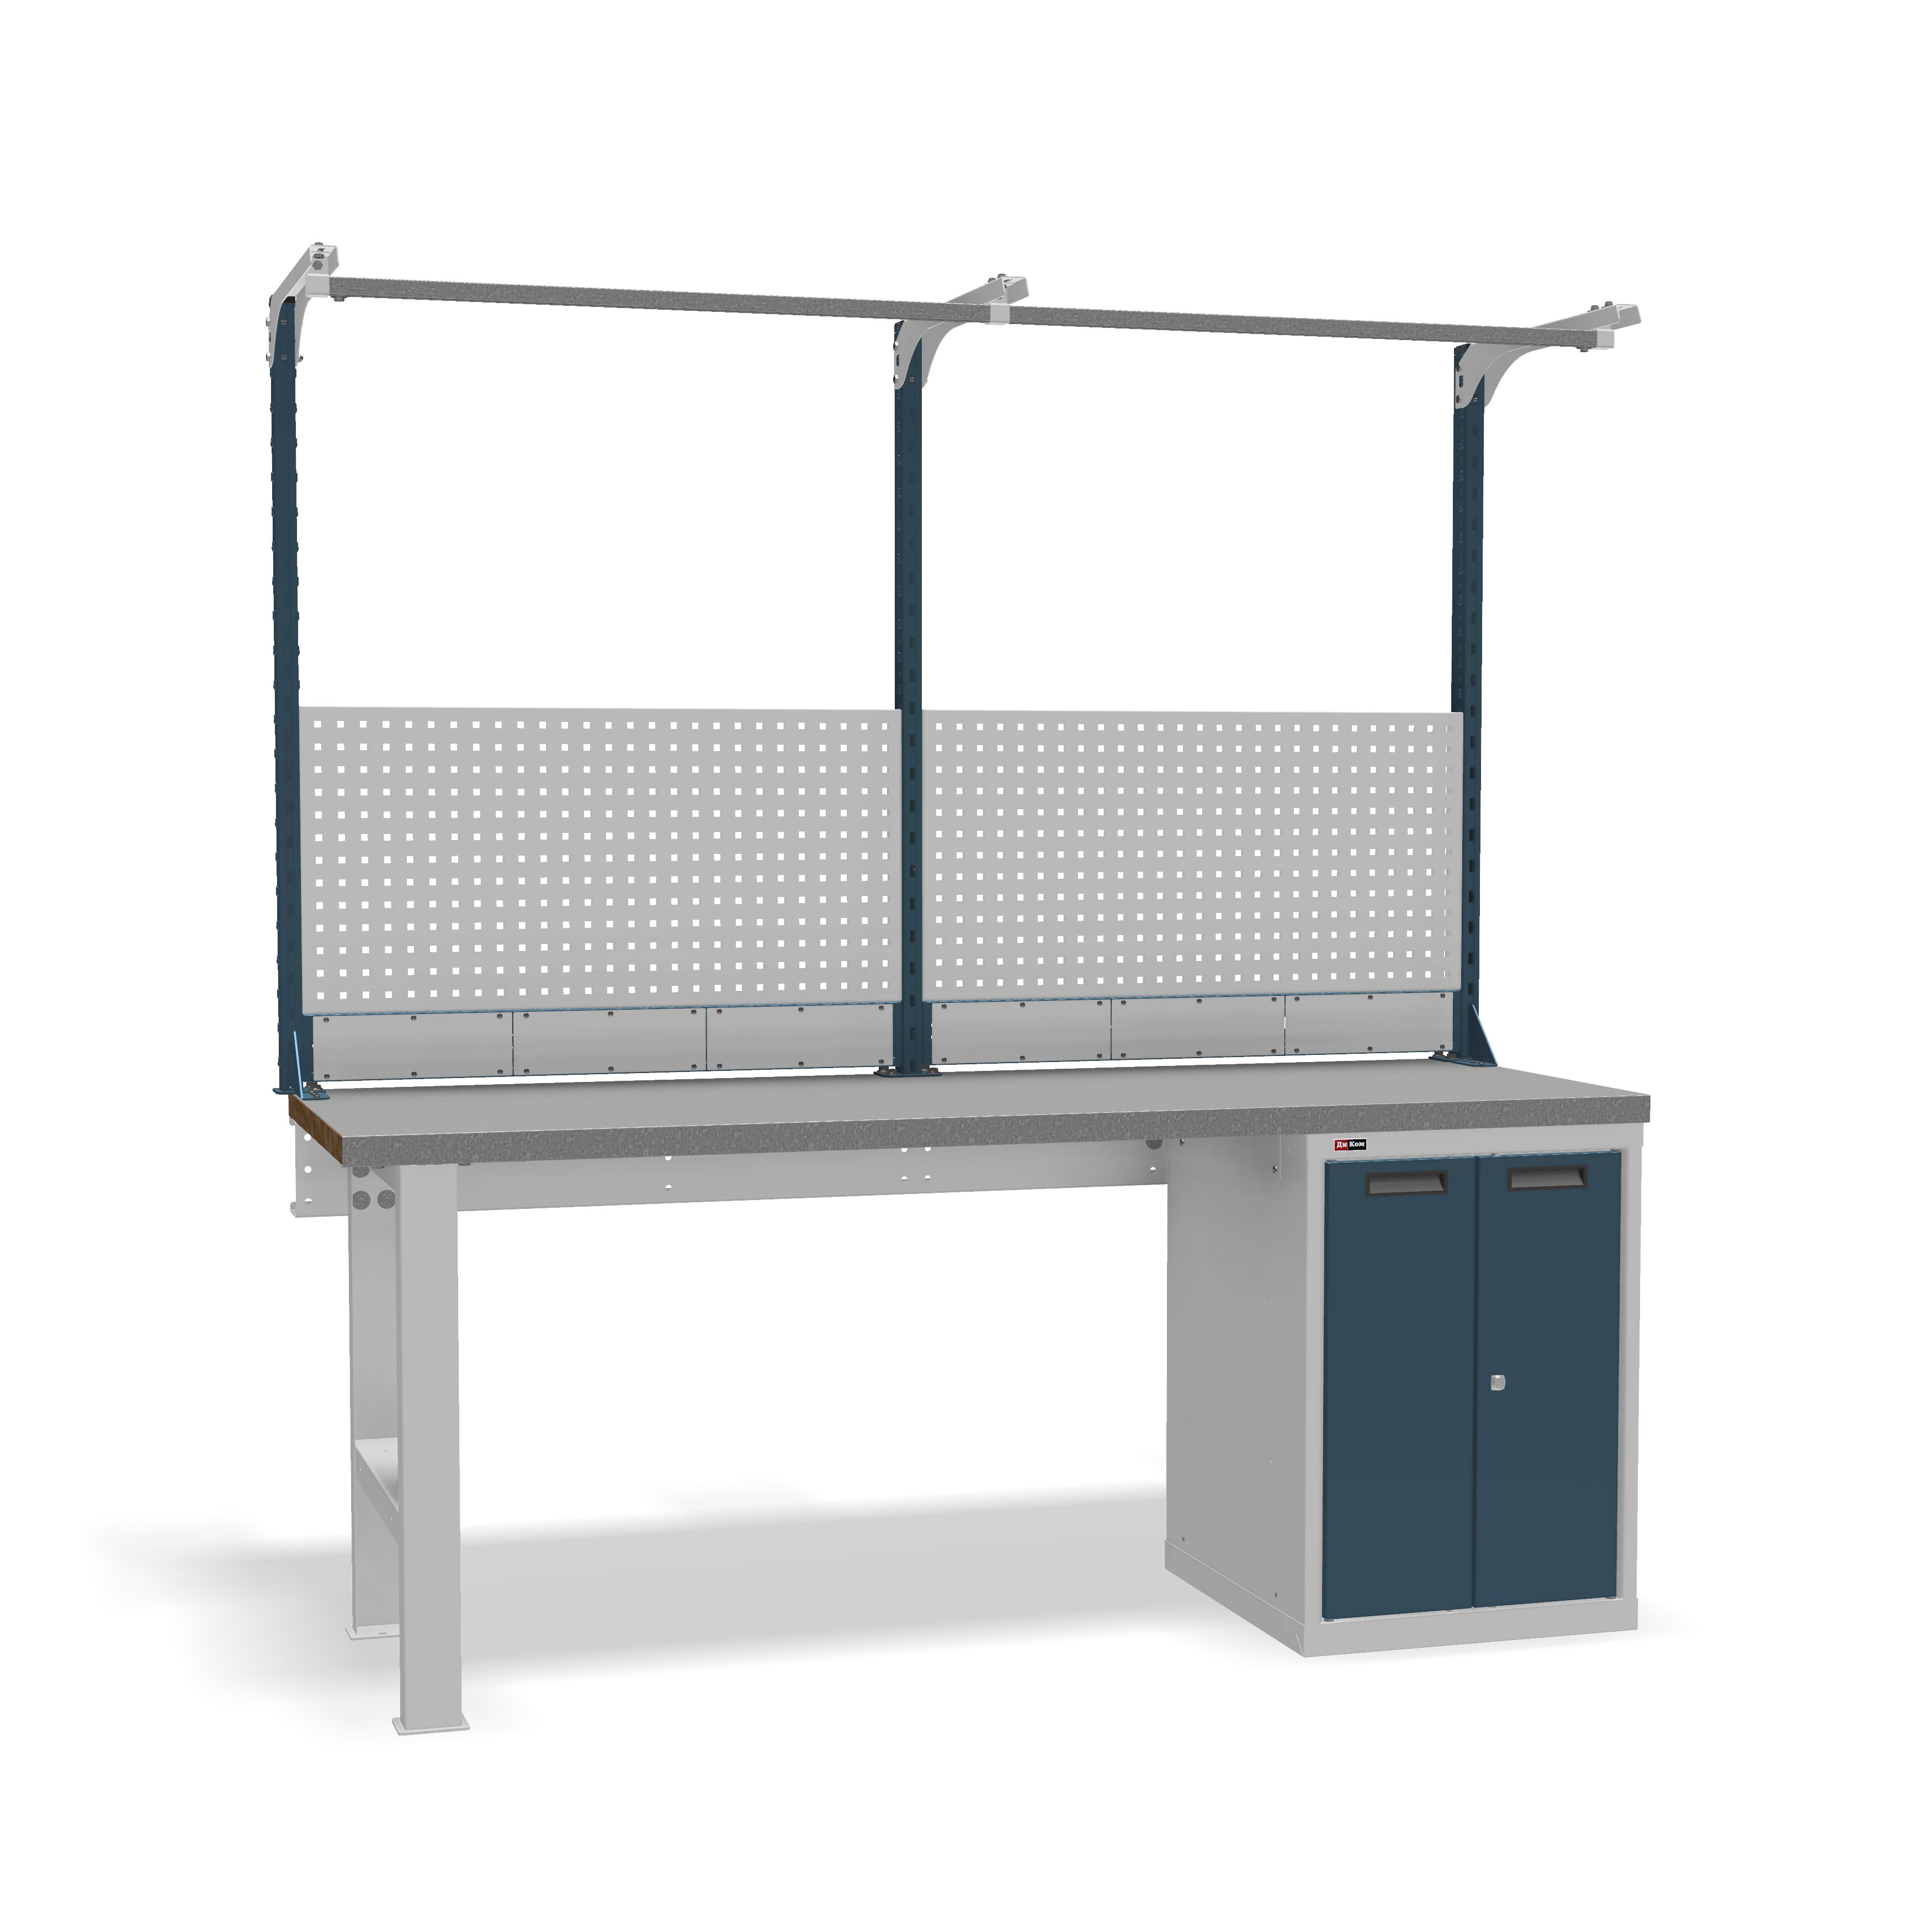 DiKom VS-200-03 Workbench + DiKom Perforated Panel VS-200-E2